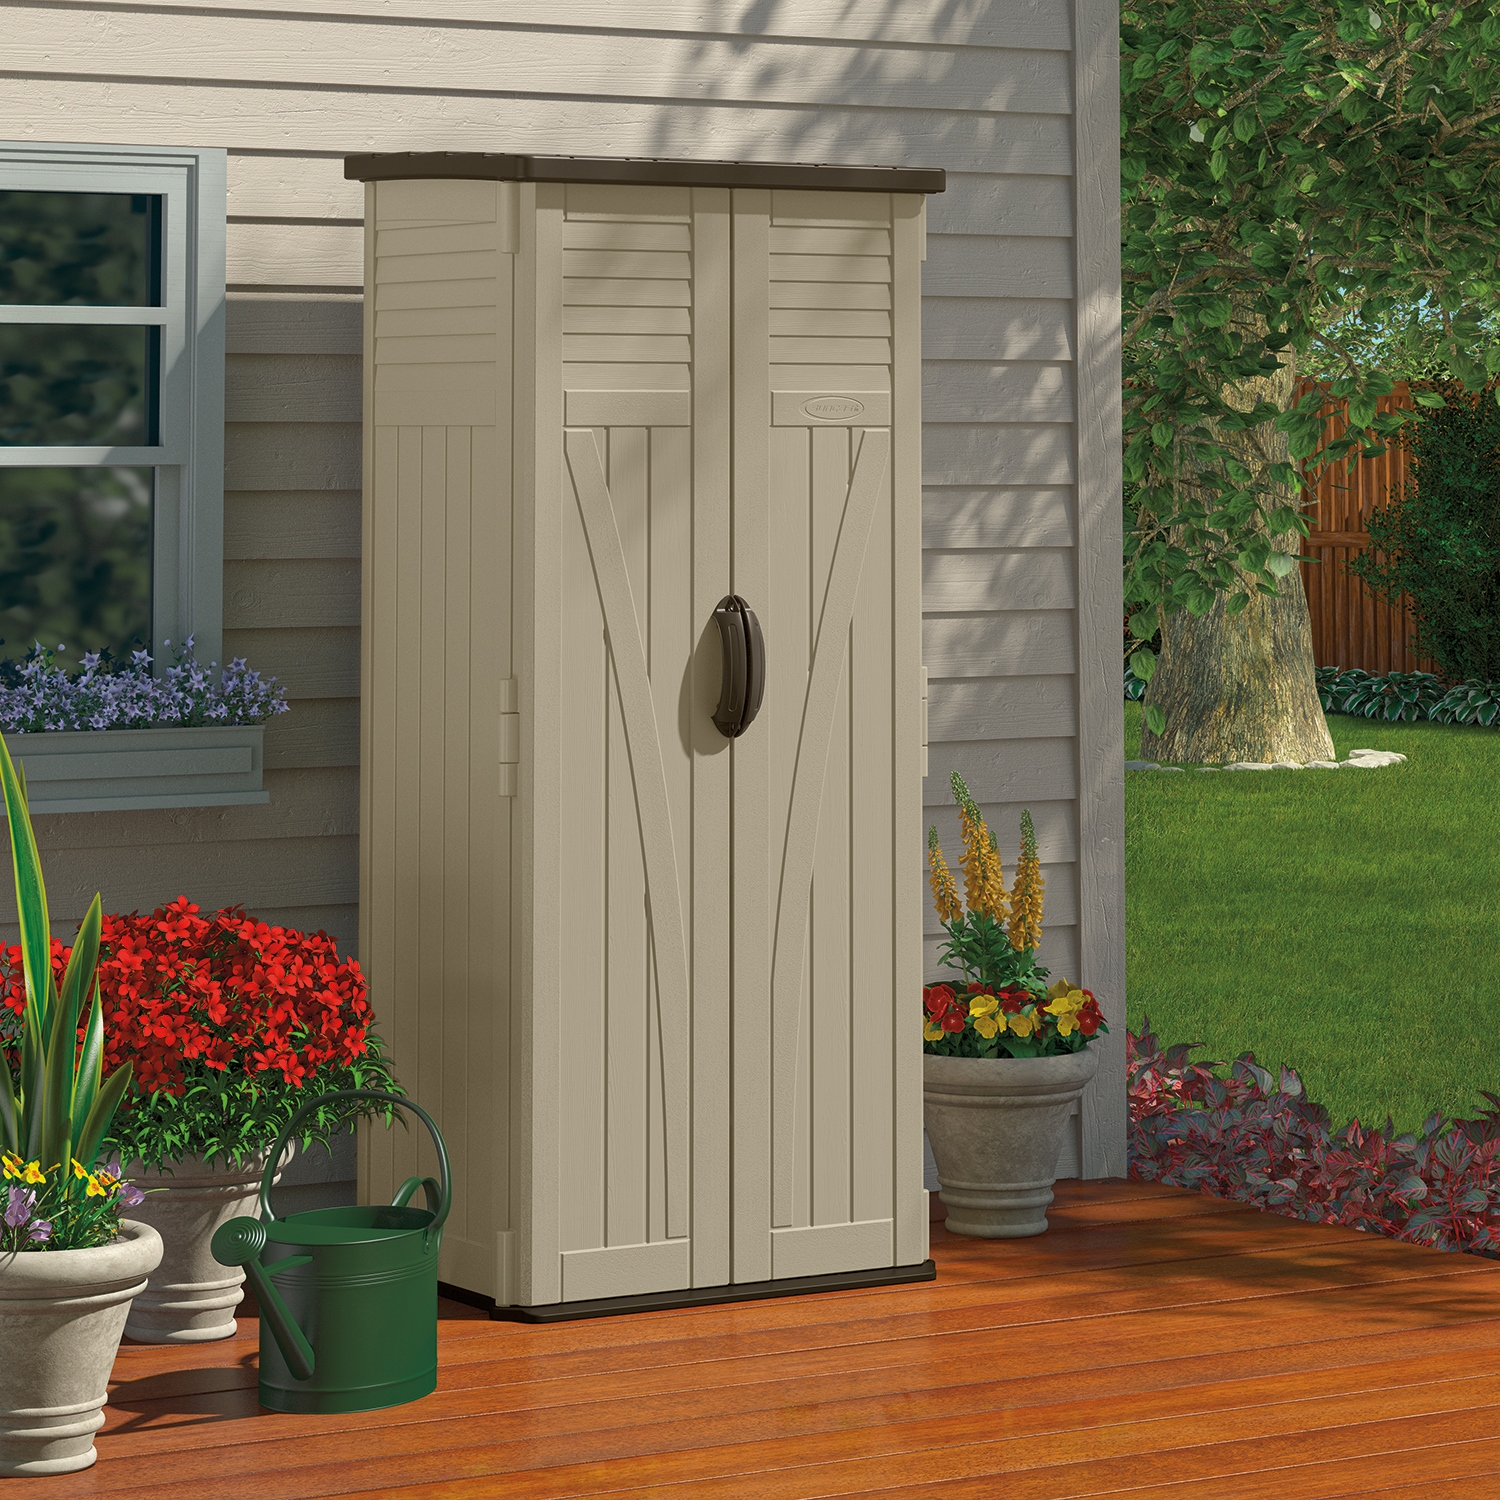 Image of BillyOh Suncast 22 ft Vertical Plstic Storage Shed